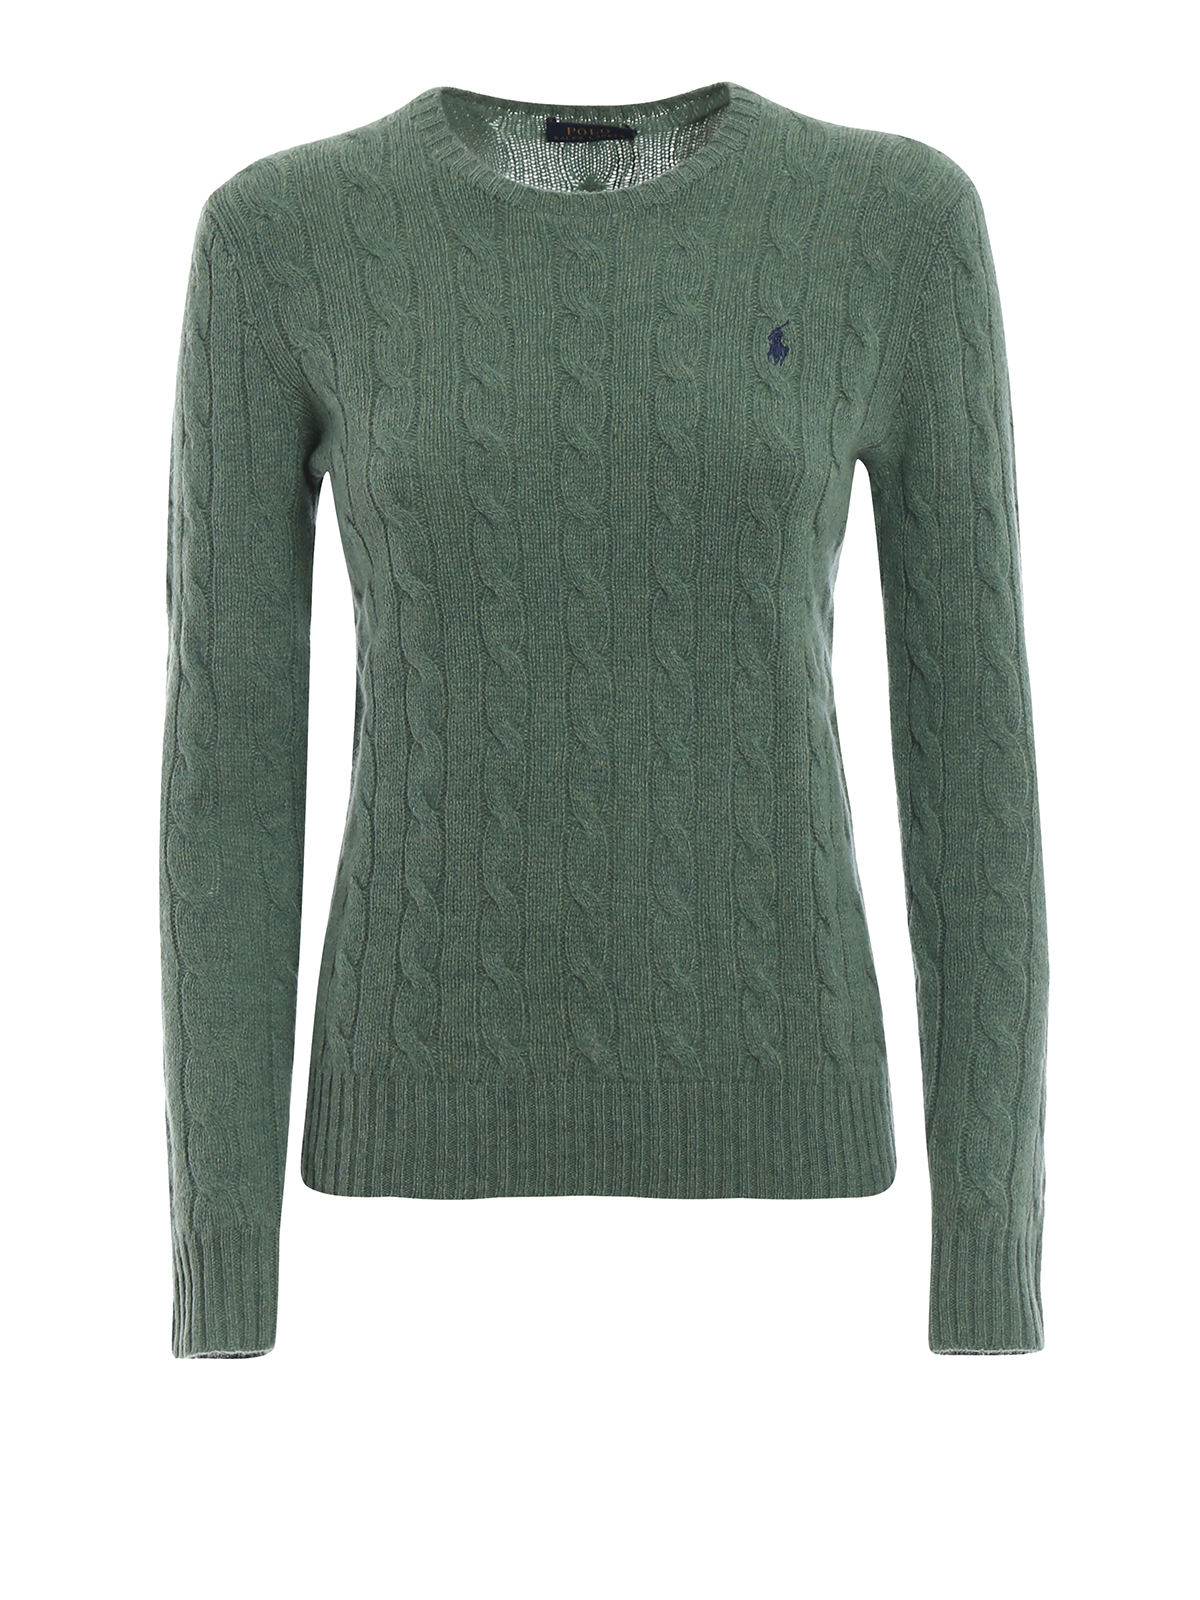 d75aeb24ed4e Polo Ralph Lauren - Pull Col Rond - Vert - Pull col rond - 211525764052